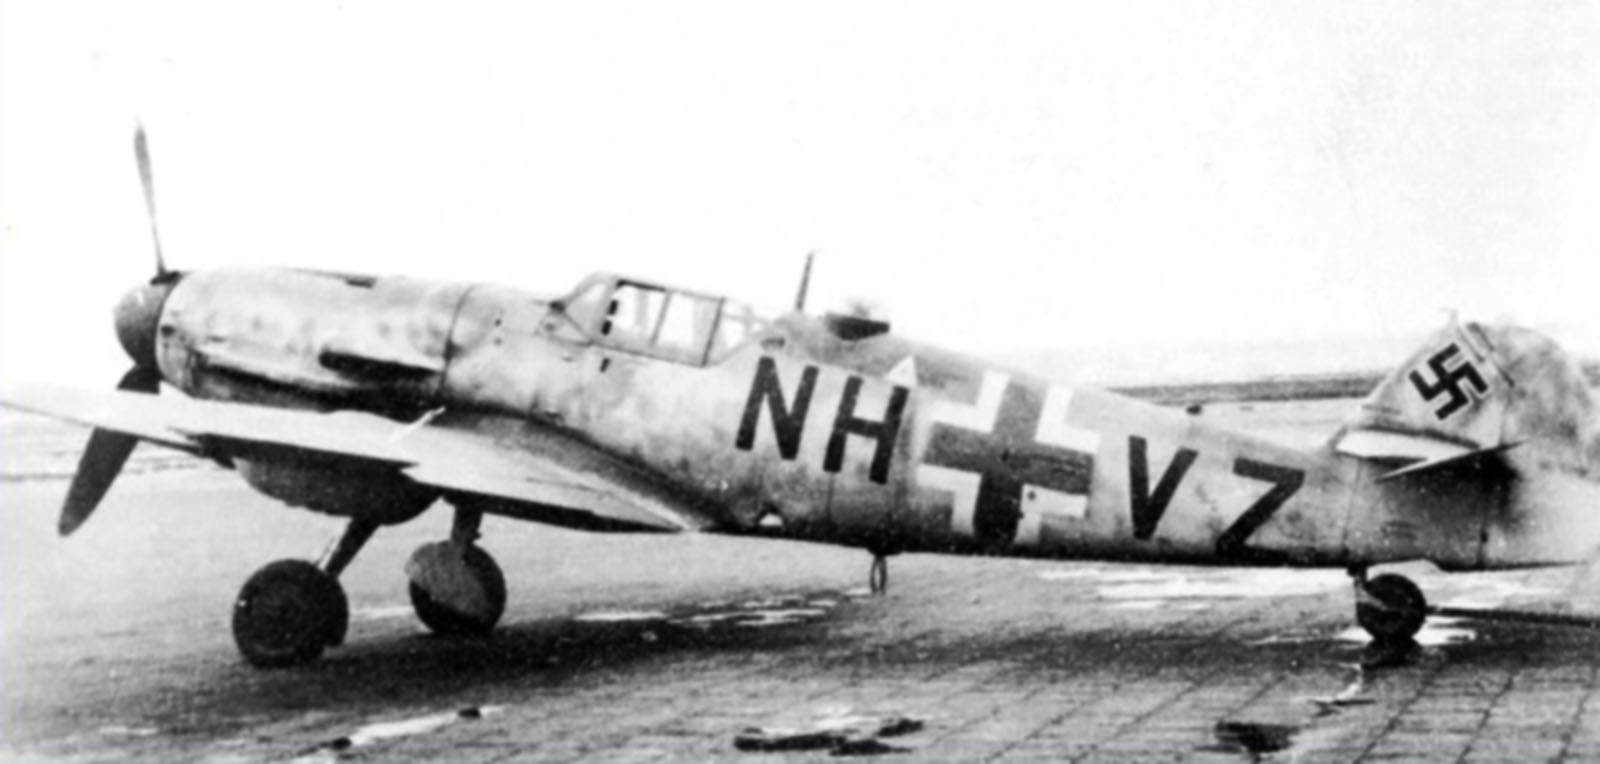 Me-109G6U4NR3R6-4.NJG11-NH+V7-WNr-20536-Naxos-Z-warning-and-homing-receivers-1943-01.jpg